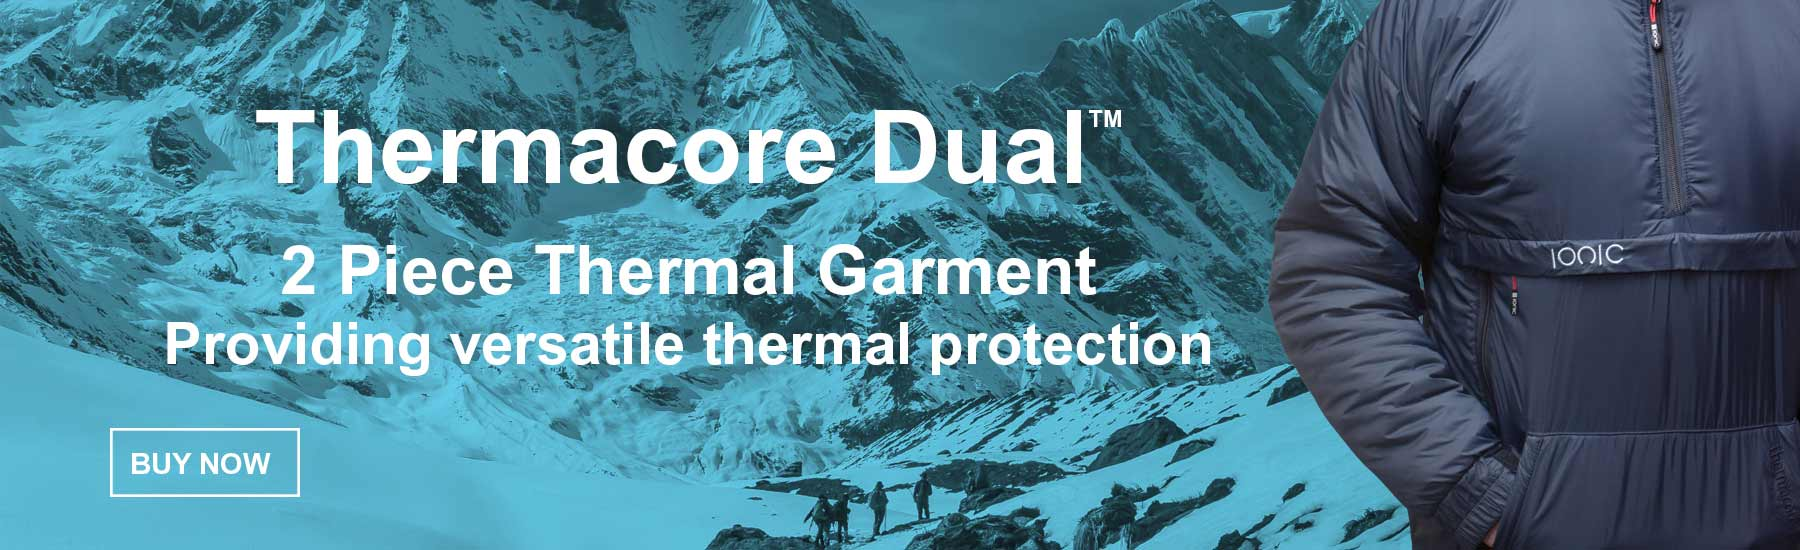 Ionic Thermacore dual